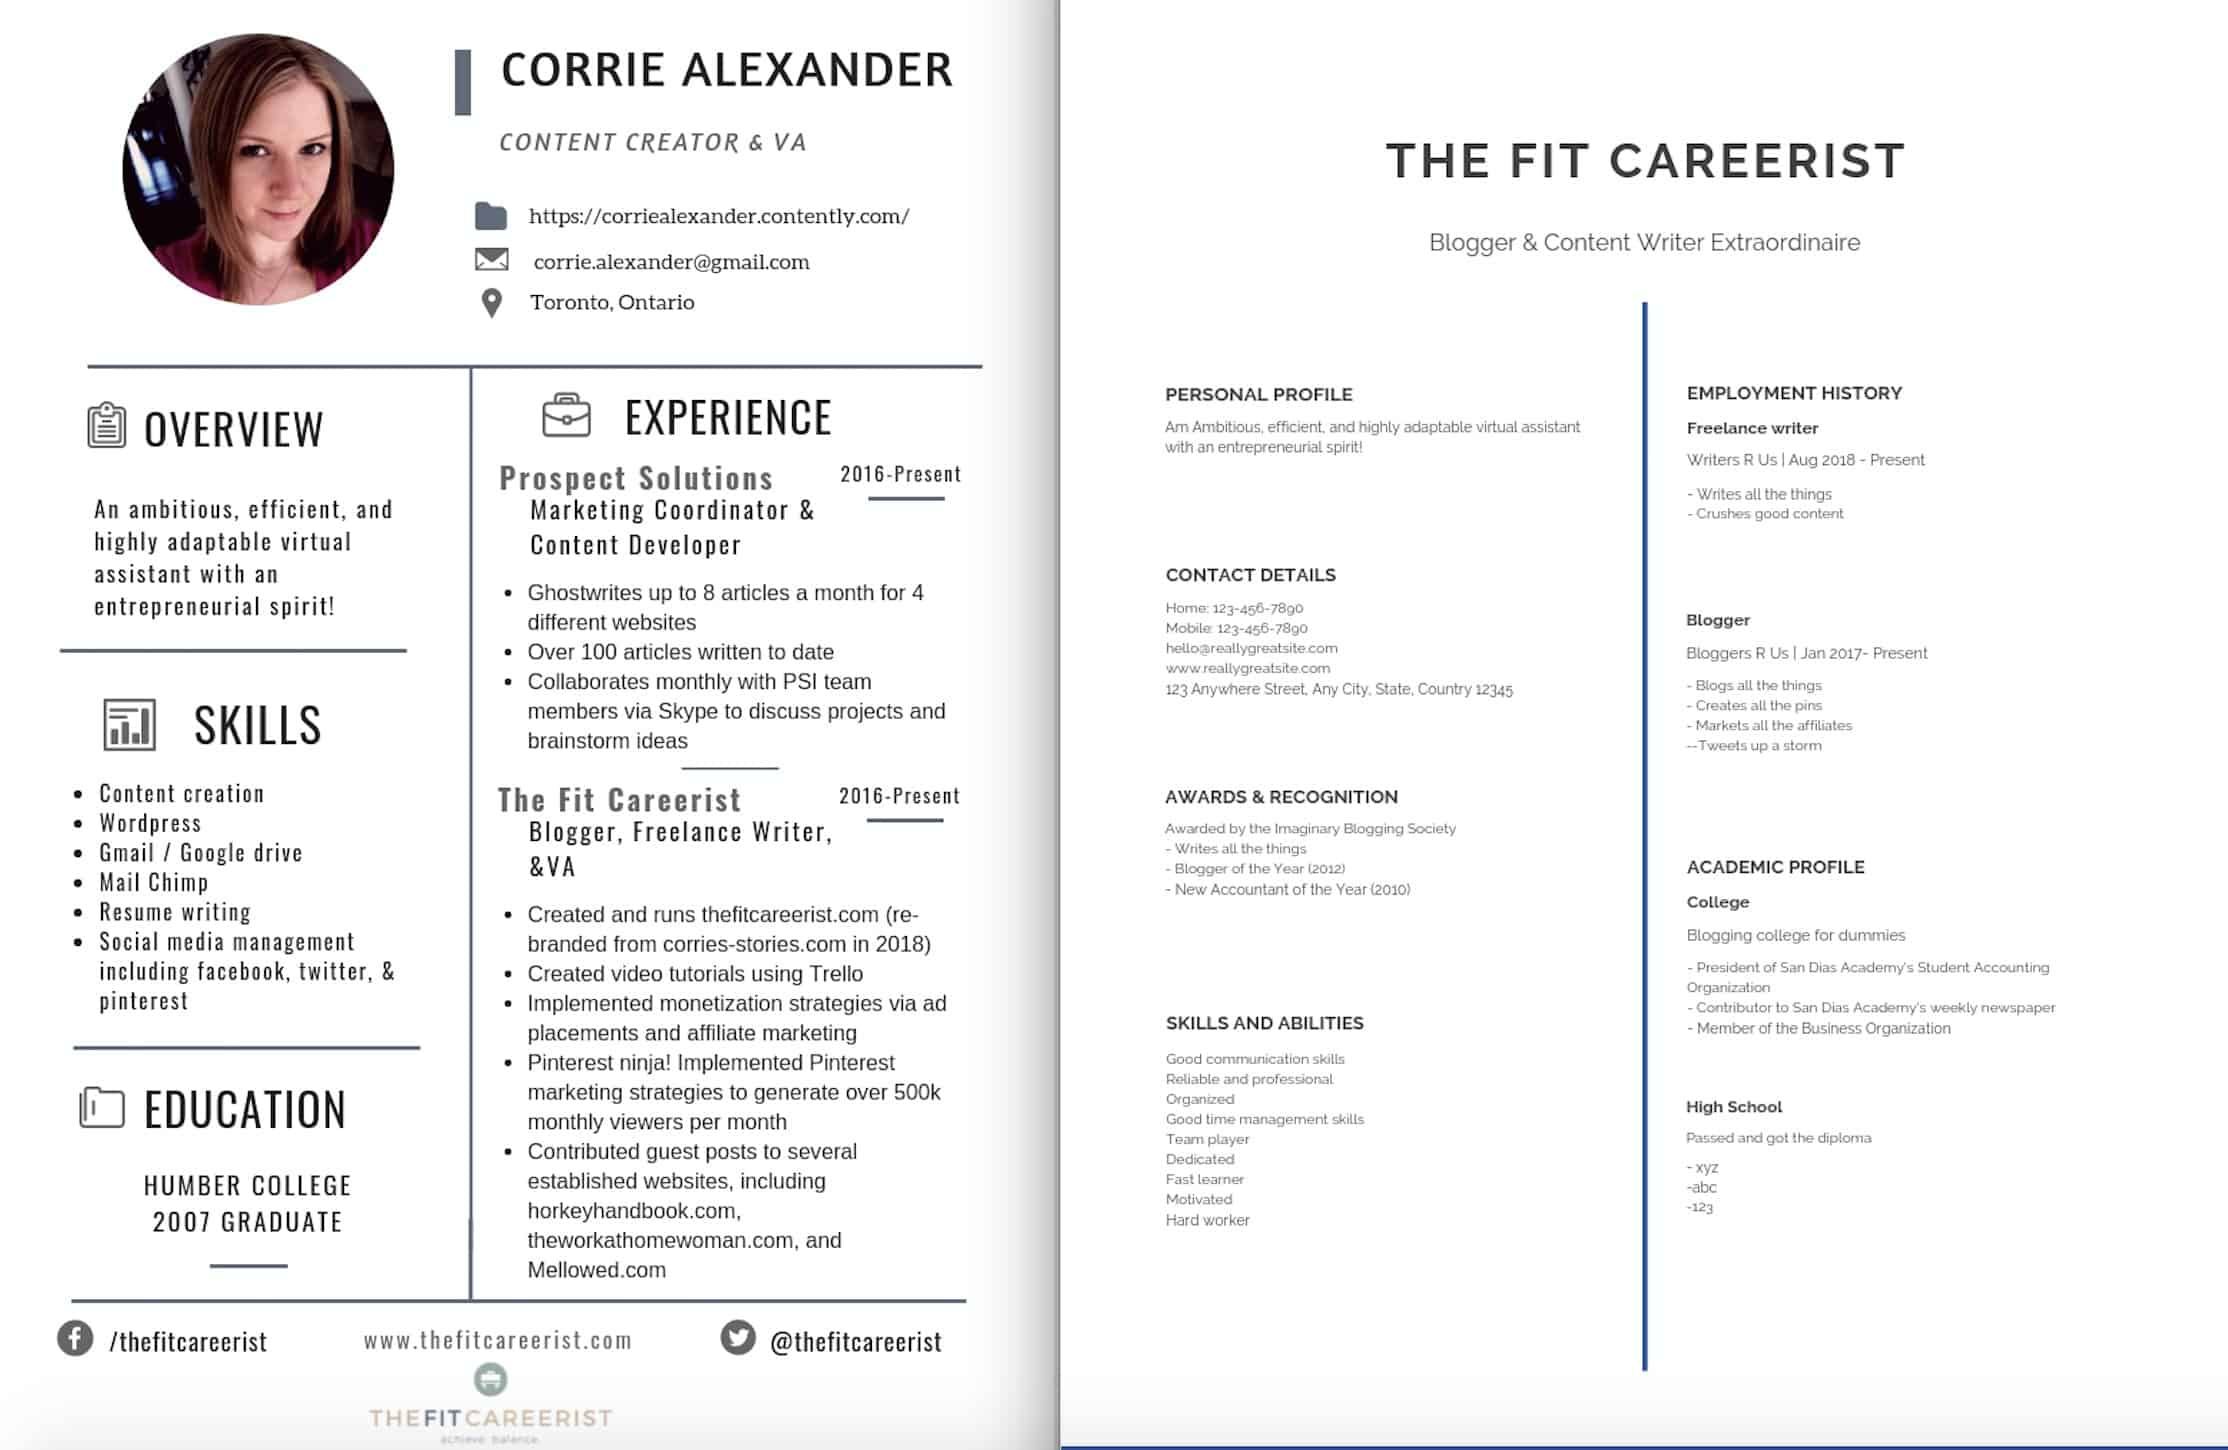 Examples of 2 different resume styles.